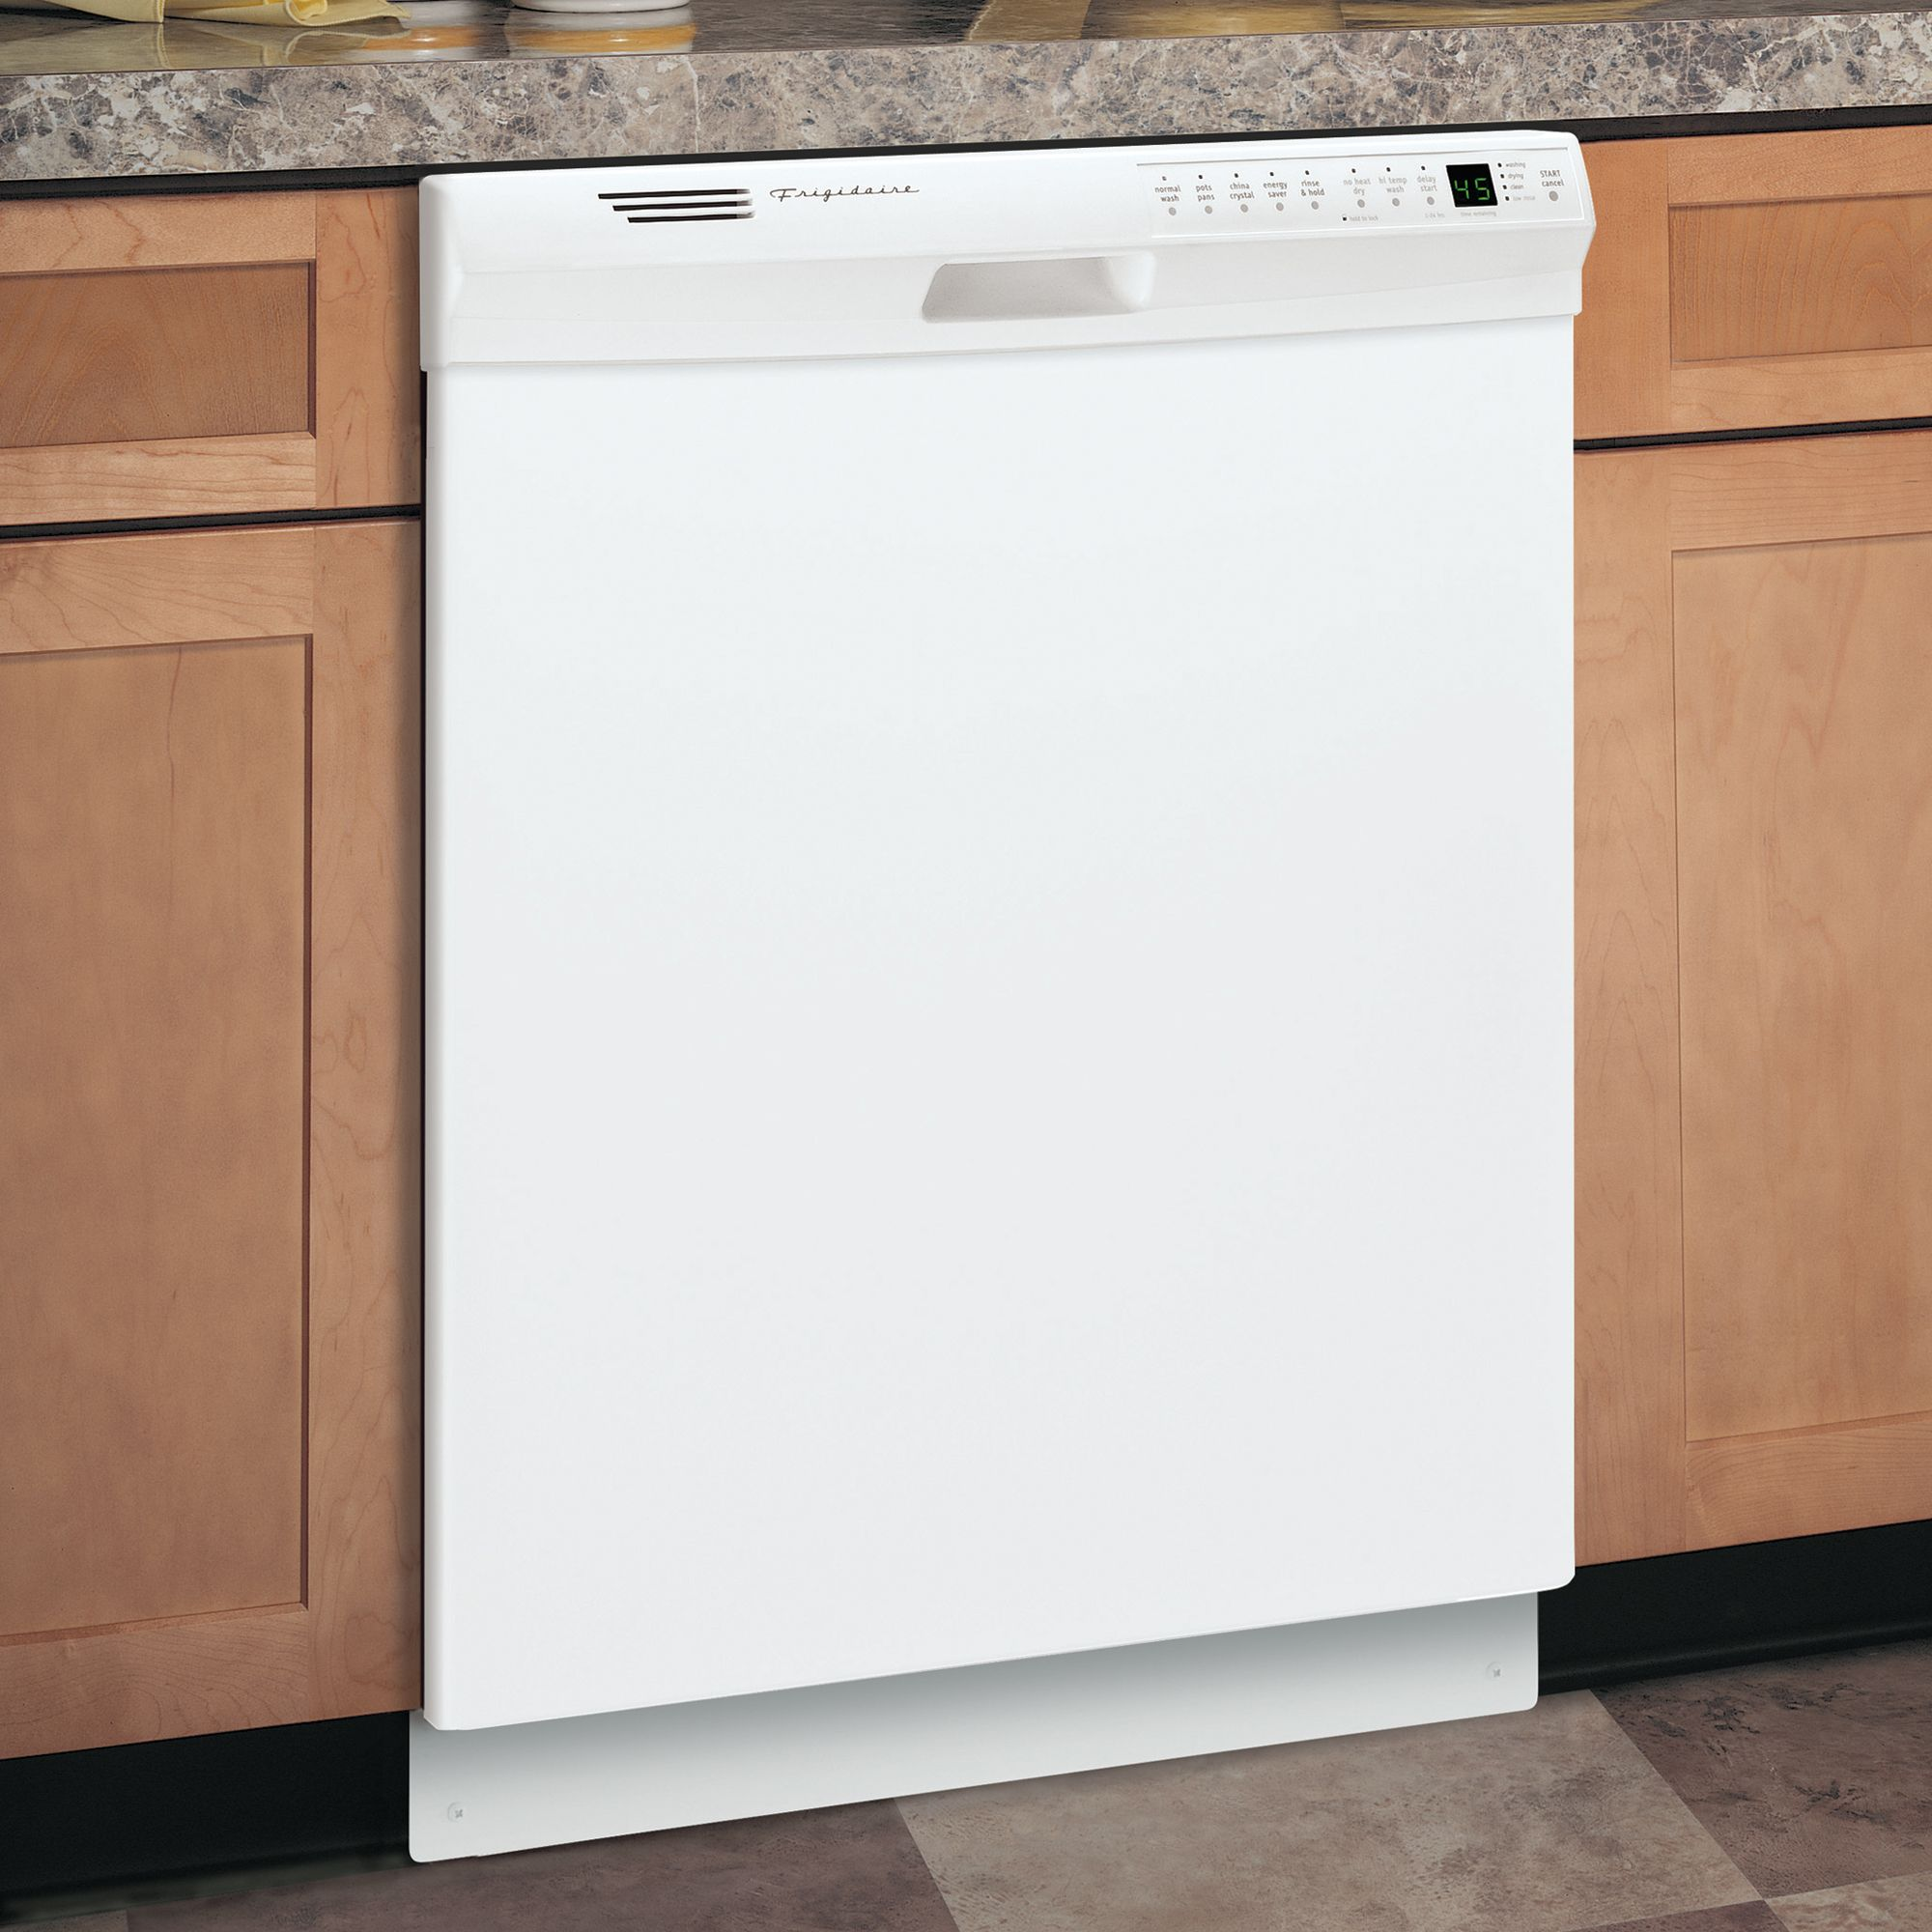 "Frigidaire 24"" Built-In Dishwasher (FDB2410HI)"